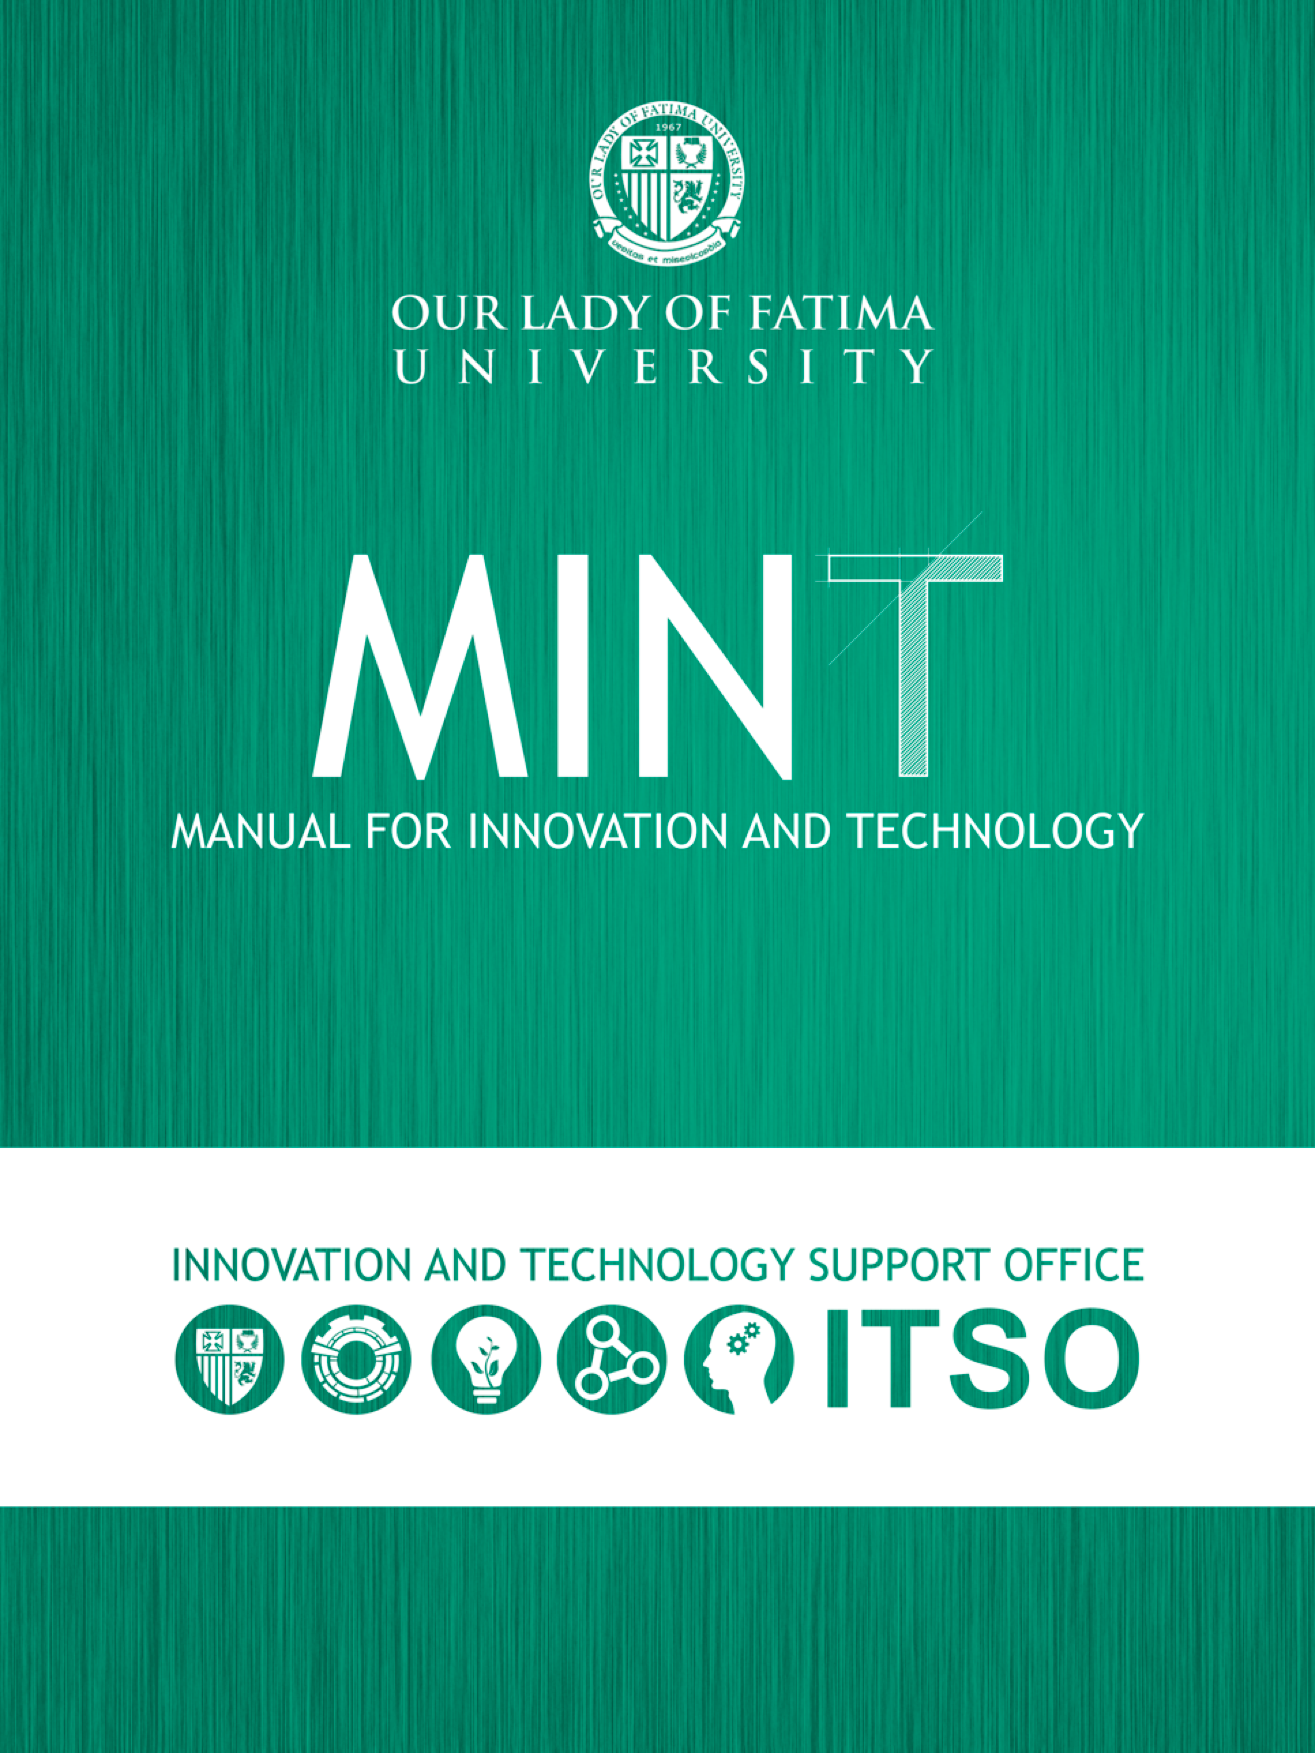 MANUAL FOR INNOVATION AND TECHNOLOGY (MINT)